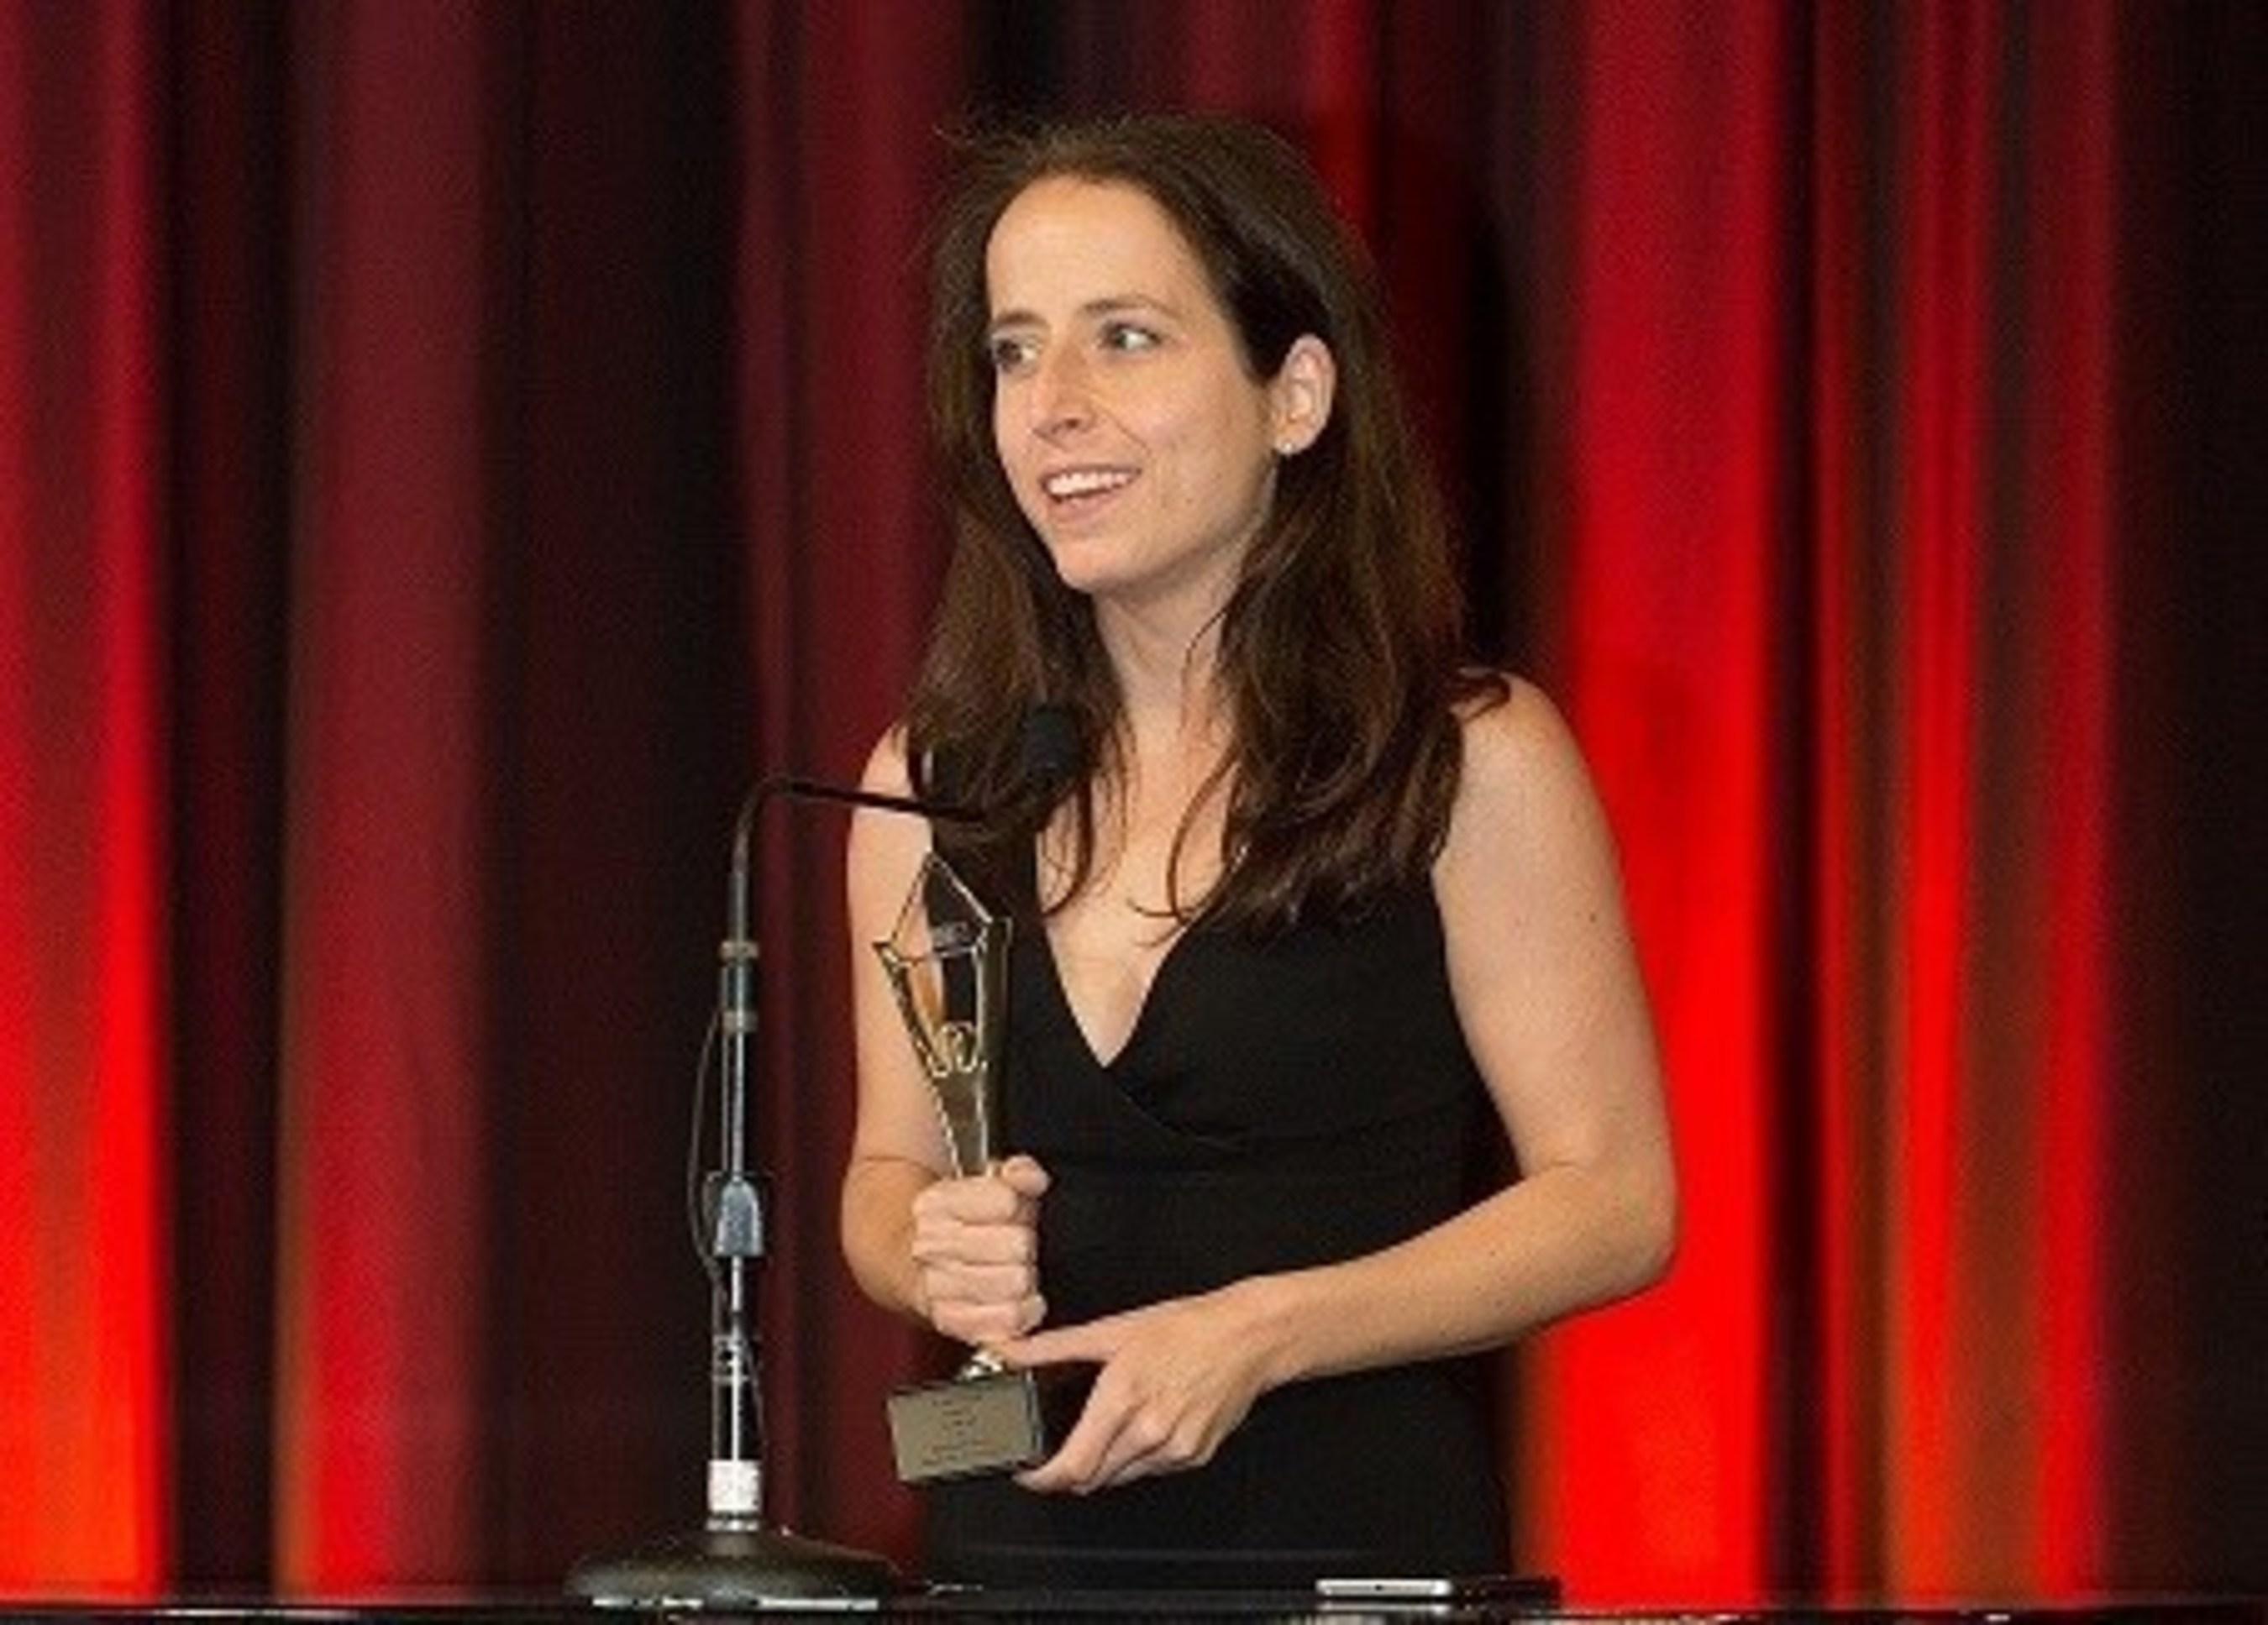 Jana Uhlig, COO of ADELLO, Wins Gold Stevie® Award in Female Executive of the Year